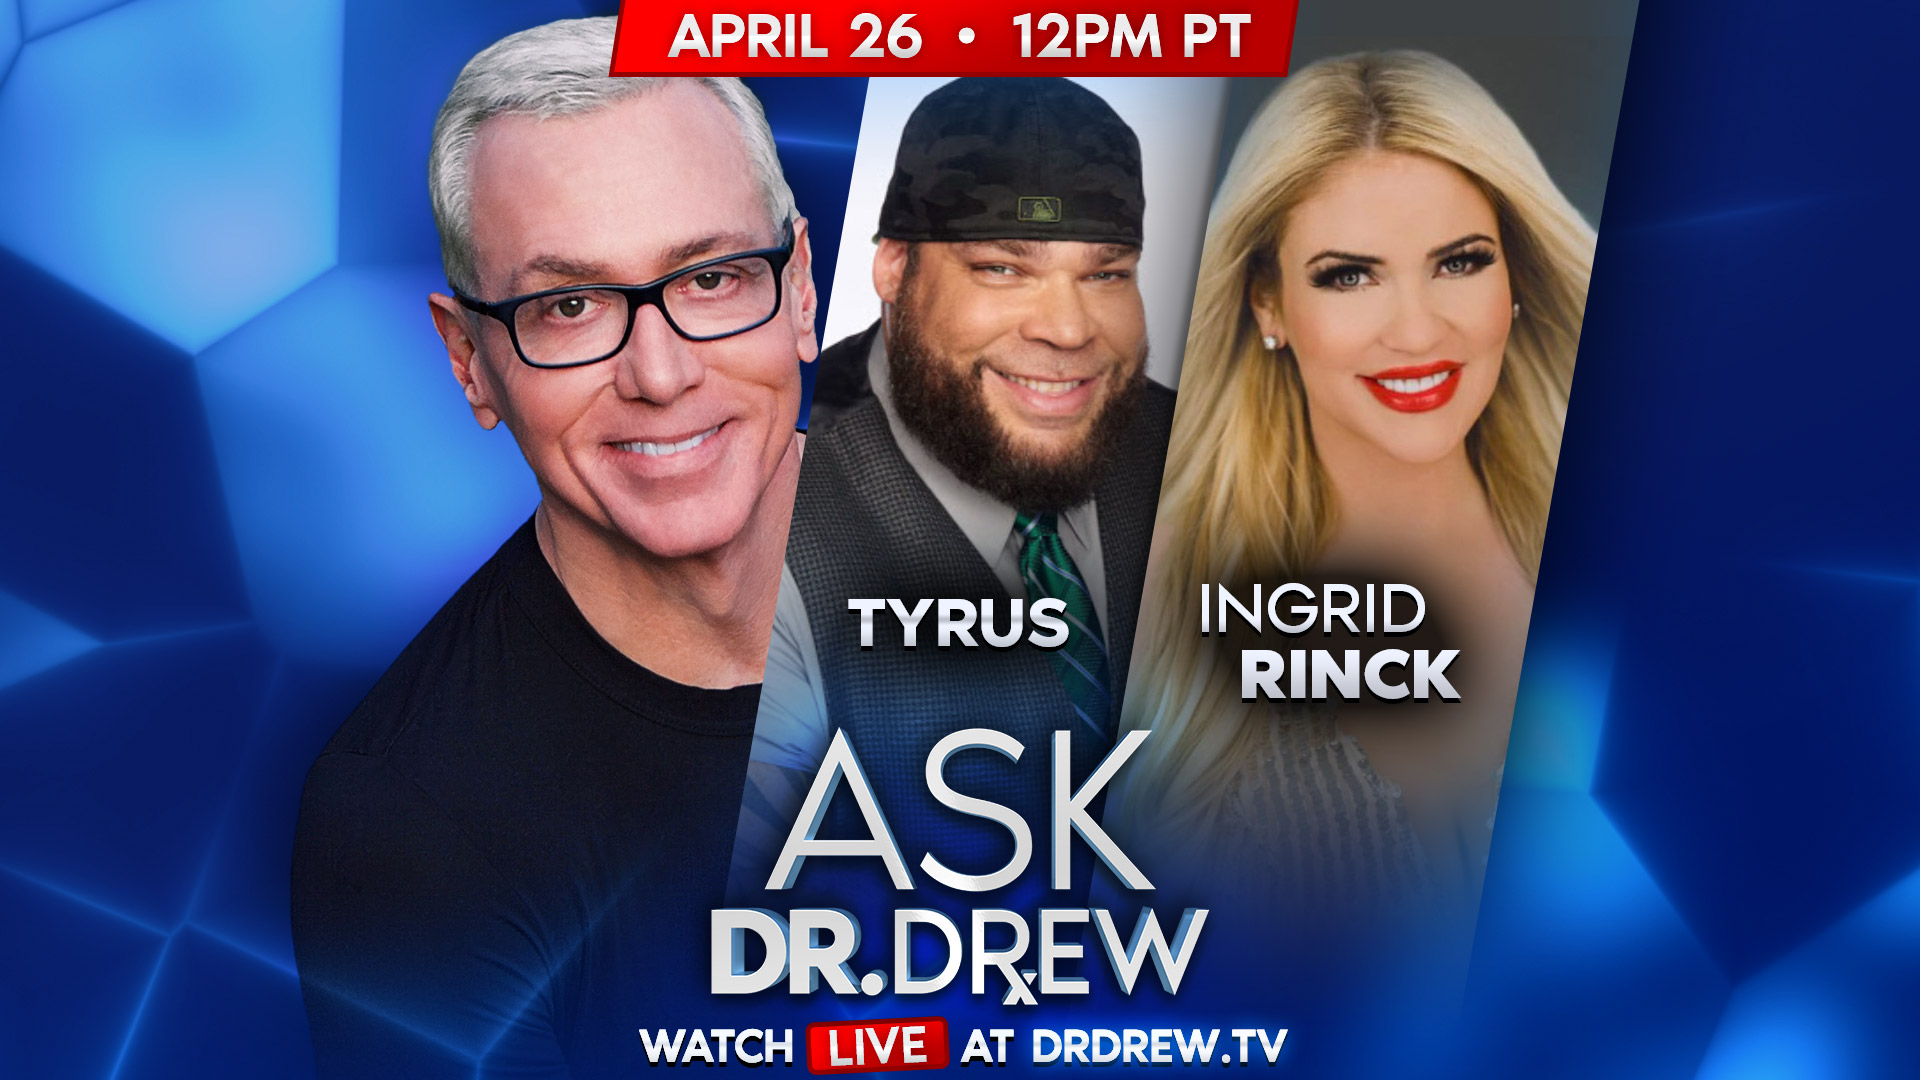 Ask Dr. Drew with Tyrus & Ingrid Rinck – 4/26/2020